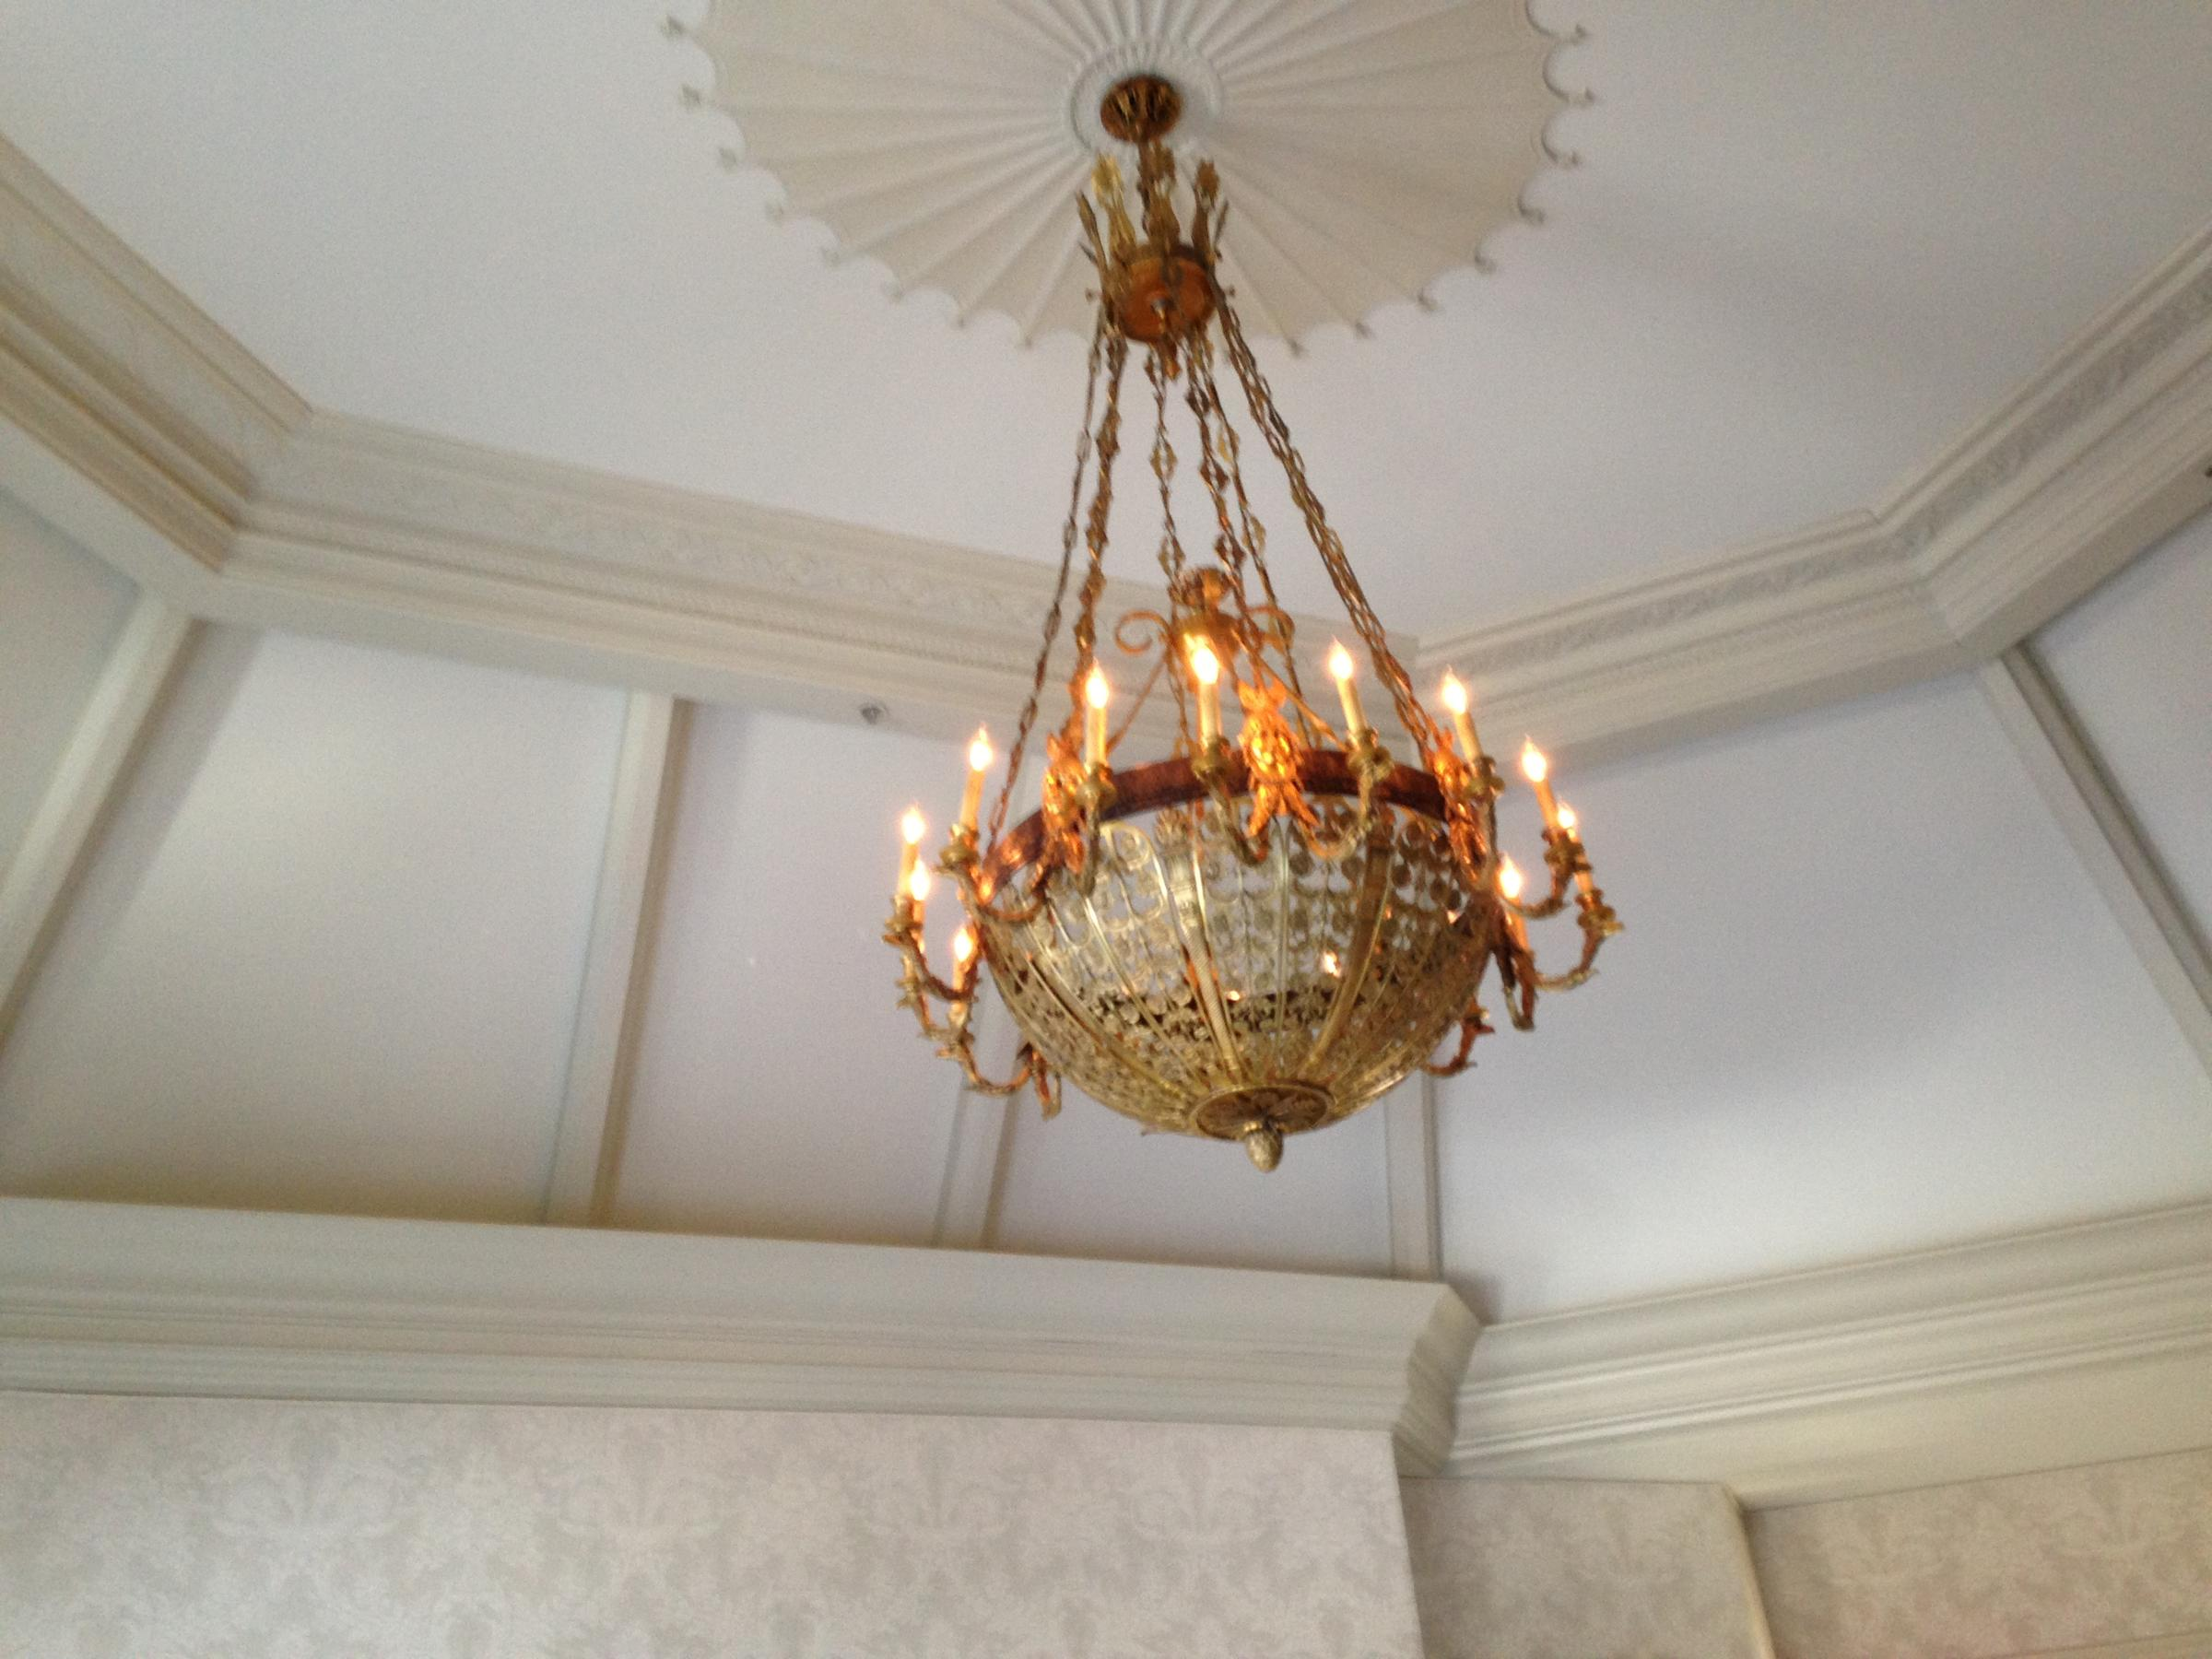 Citys past illuminated through historic lighting fixtures late mid 1800s french chandelier previously candle lighted restored to electricity in the early 1900s and re restored in 1995 now installed at a fort arubaitofo Image collections